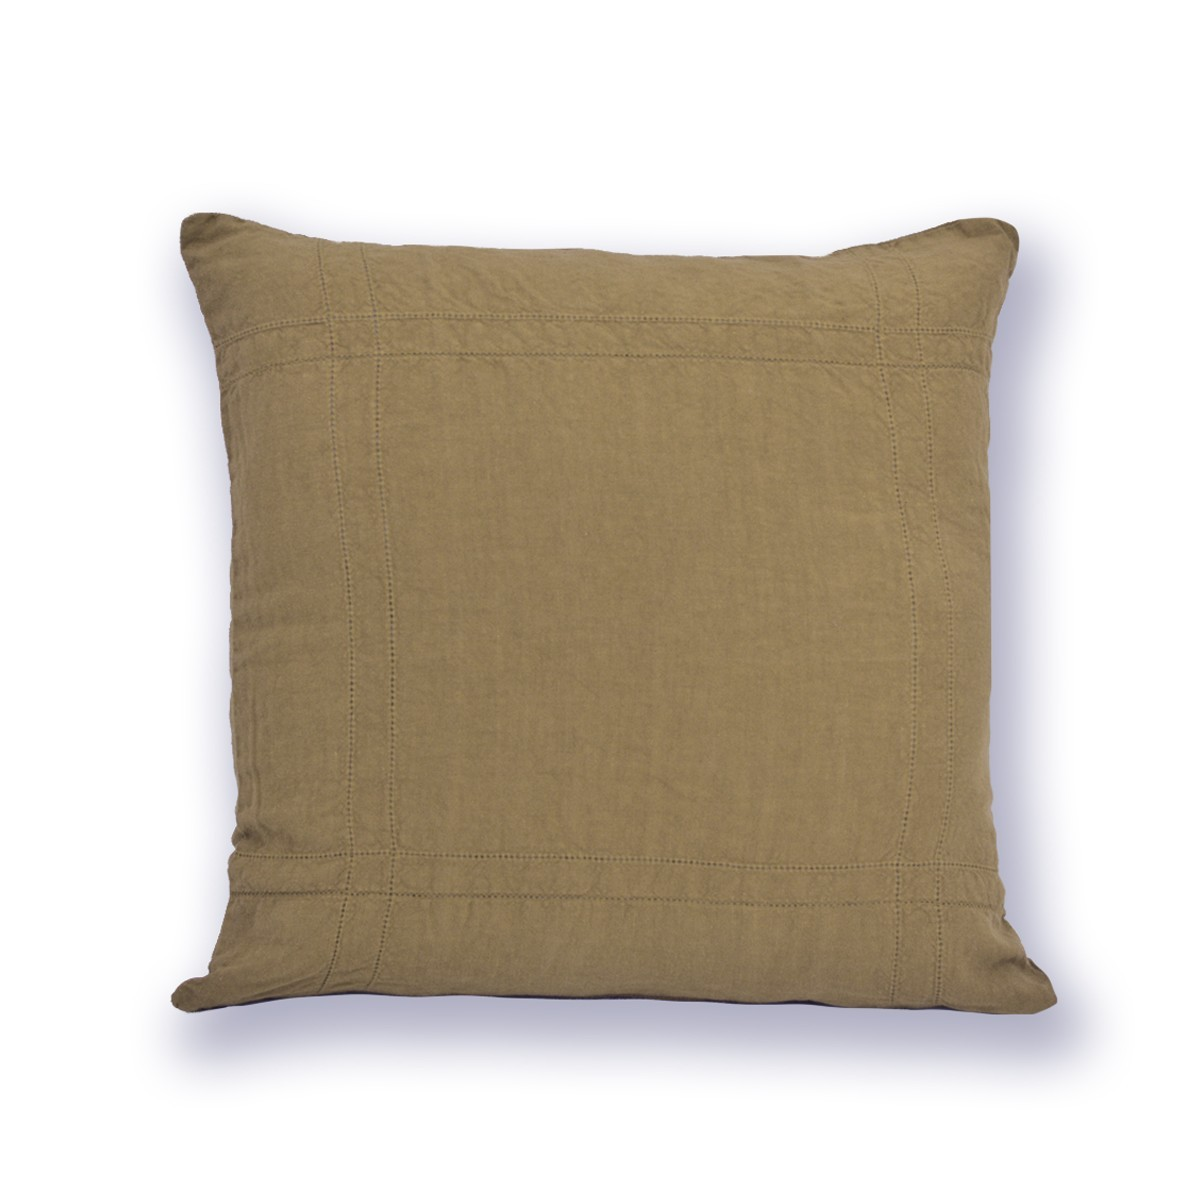 Decorative Pillow, Almalinen